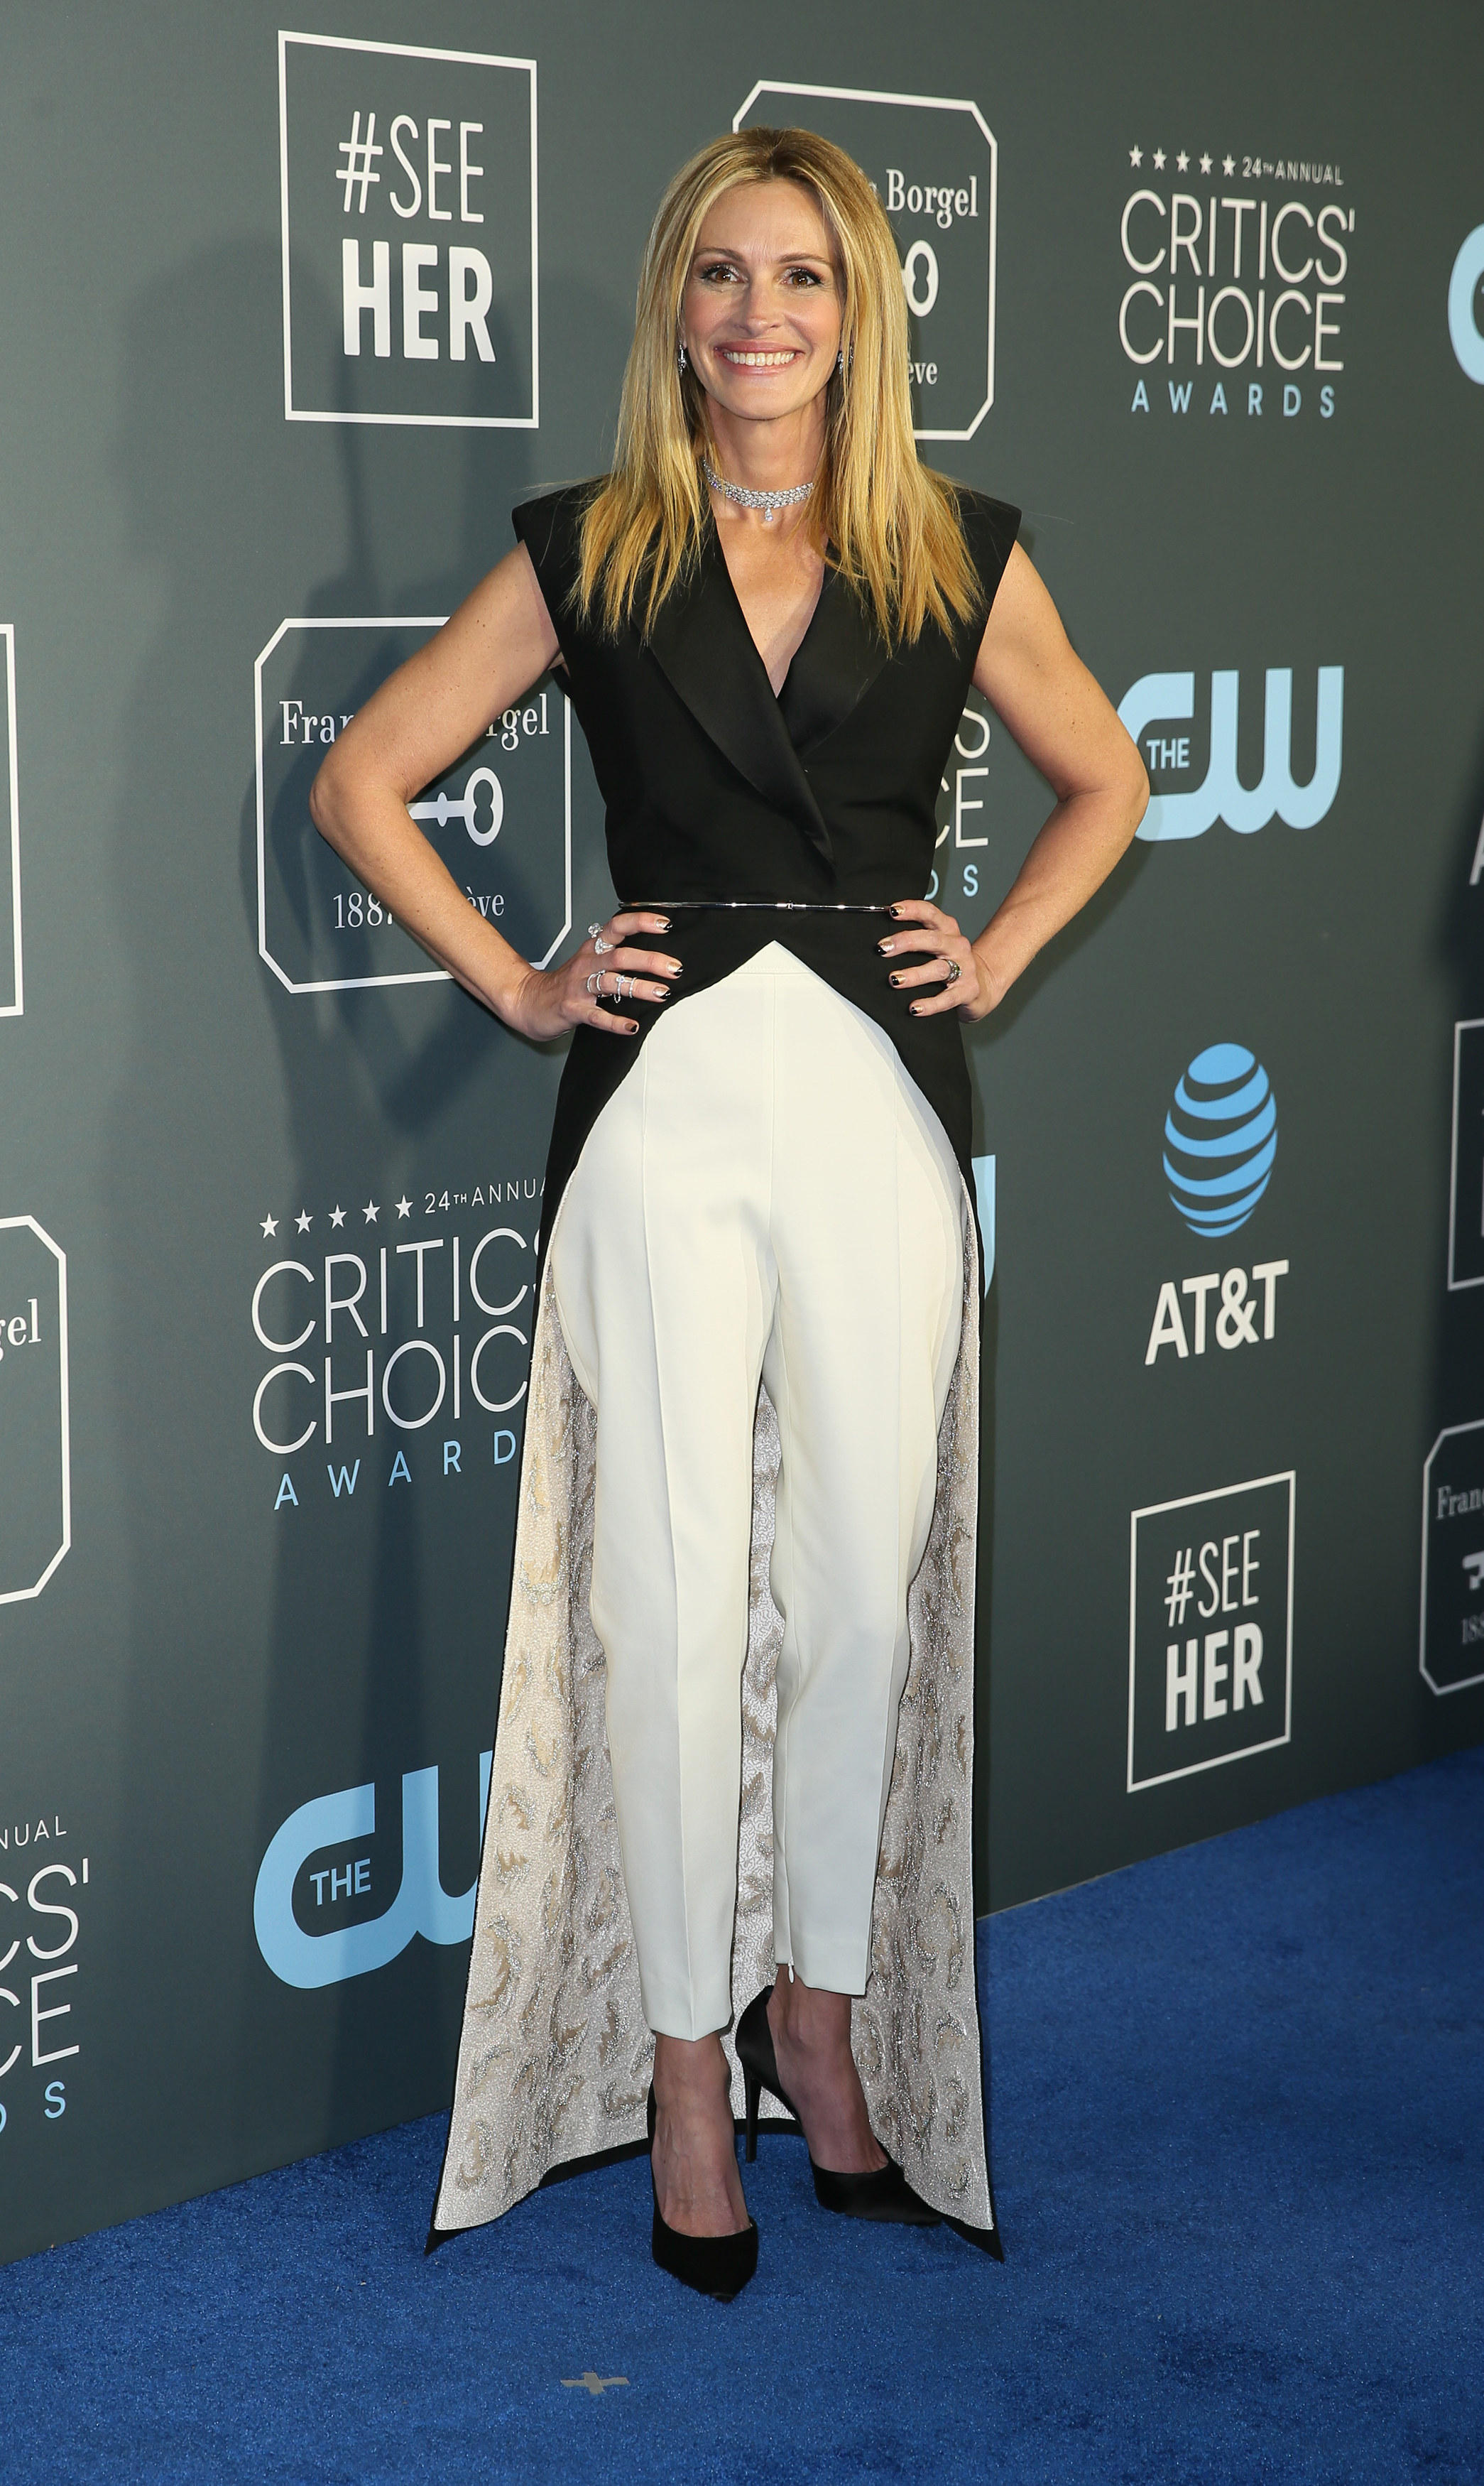 On a red carpet with hands on hips